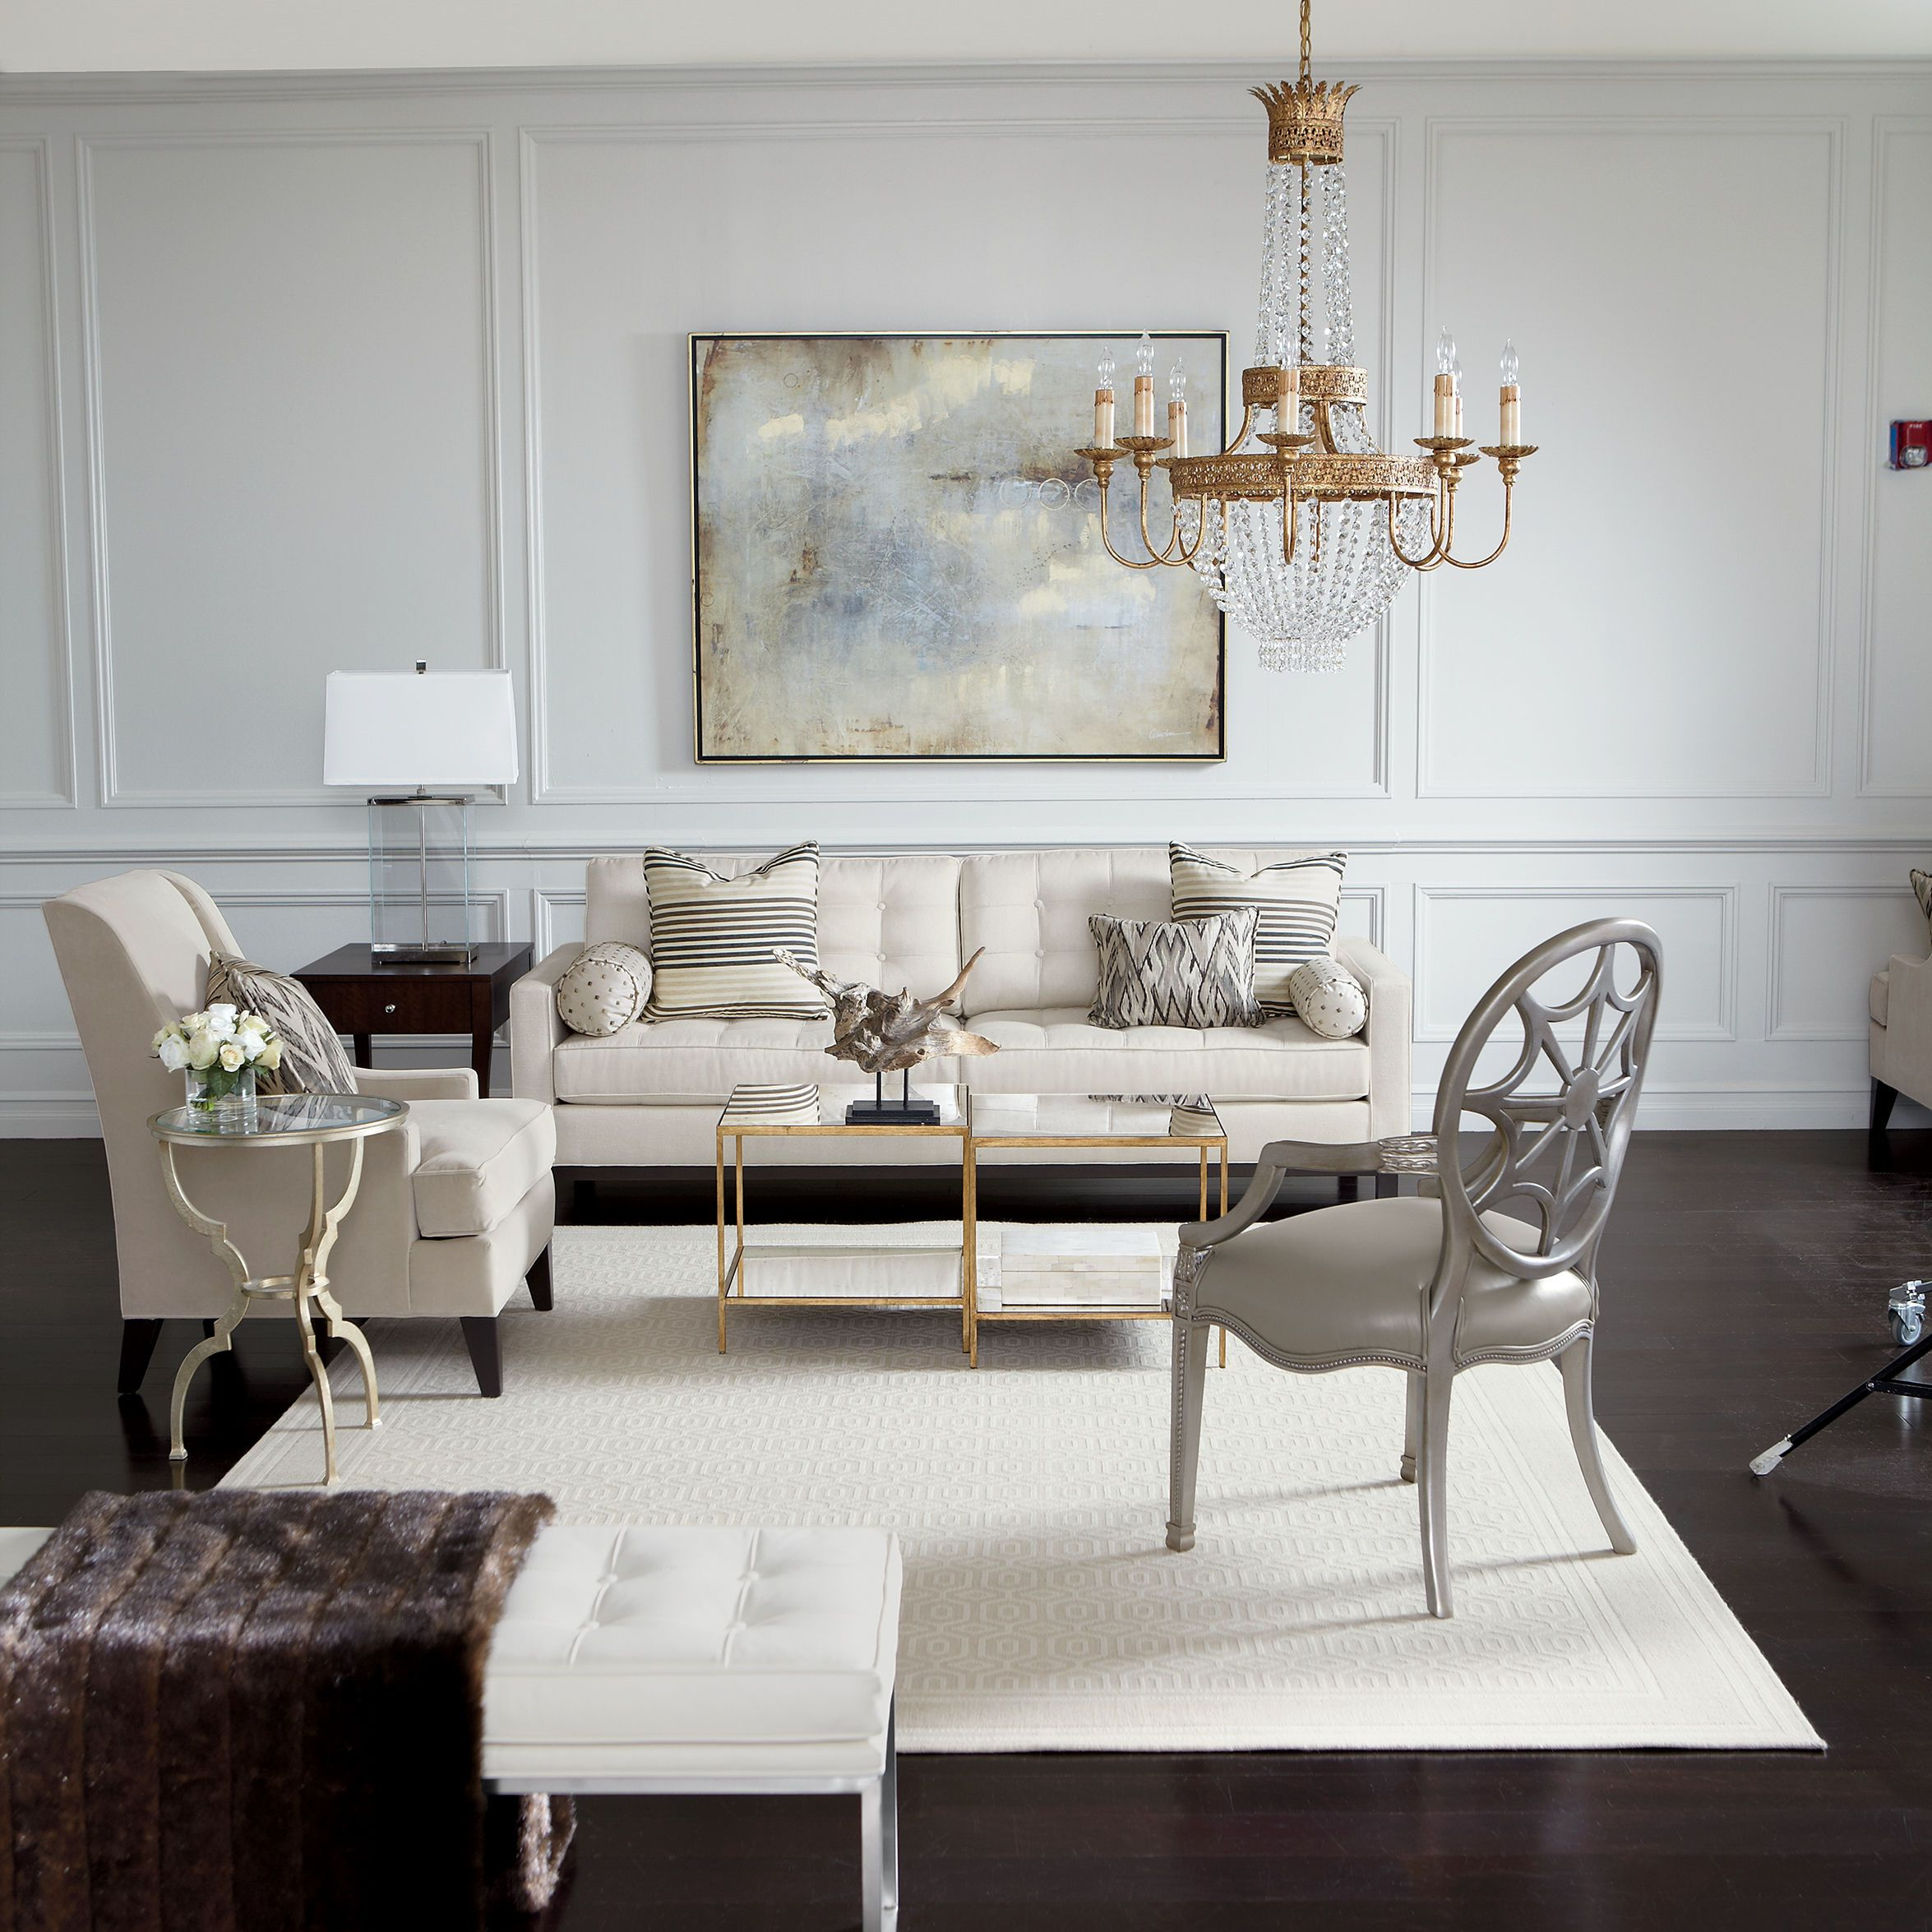 Ethan Allen Living Rooms From Our Elegance Lifestyle Notice The Mix Of Metals